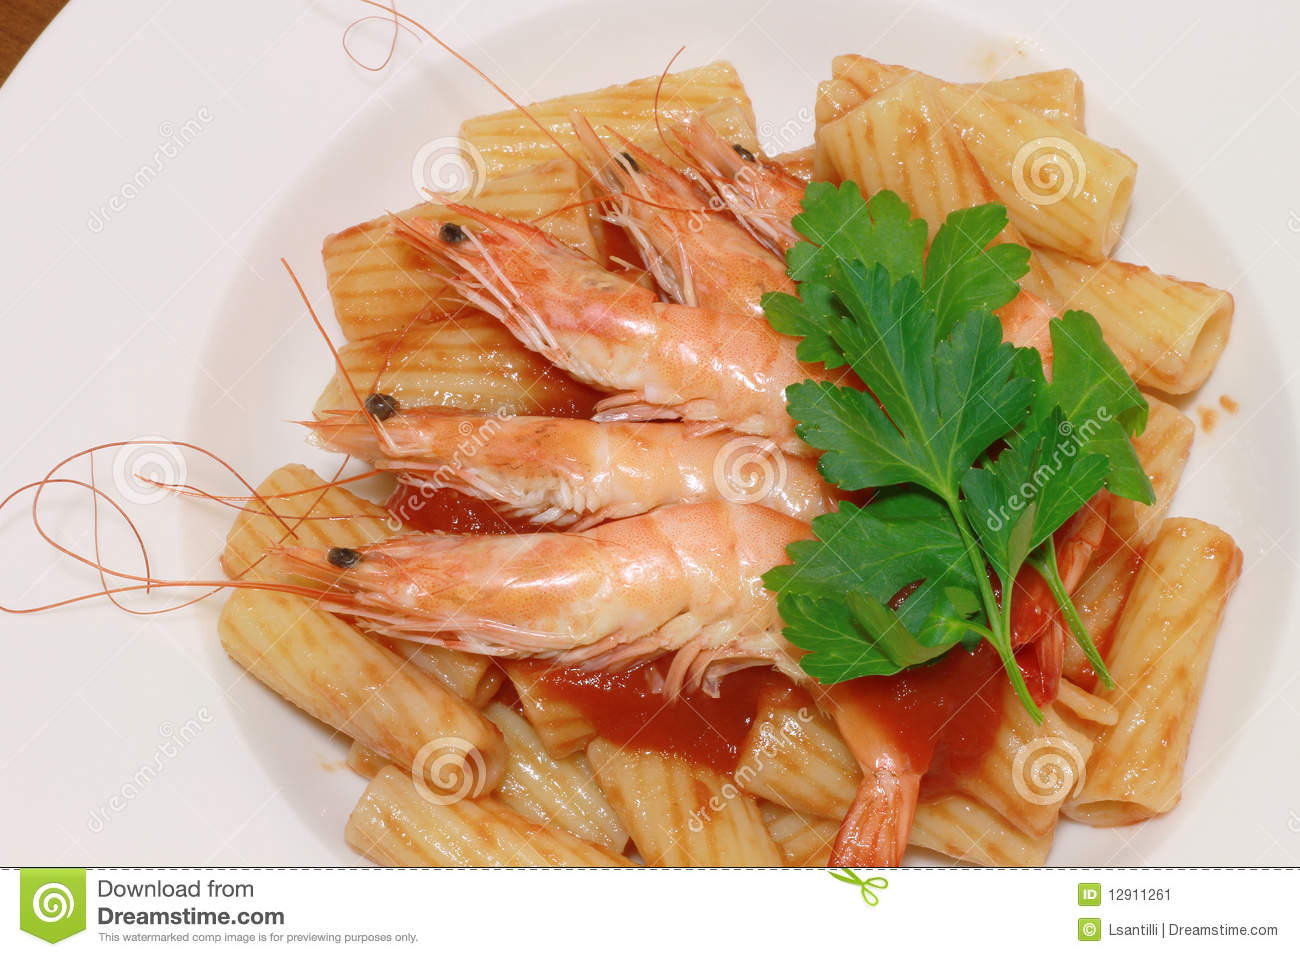 maccaroni with shrimp stock image image of gourmet fork 12911261